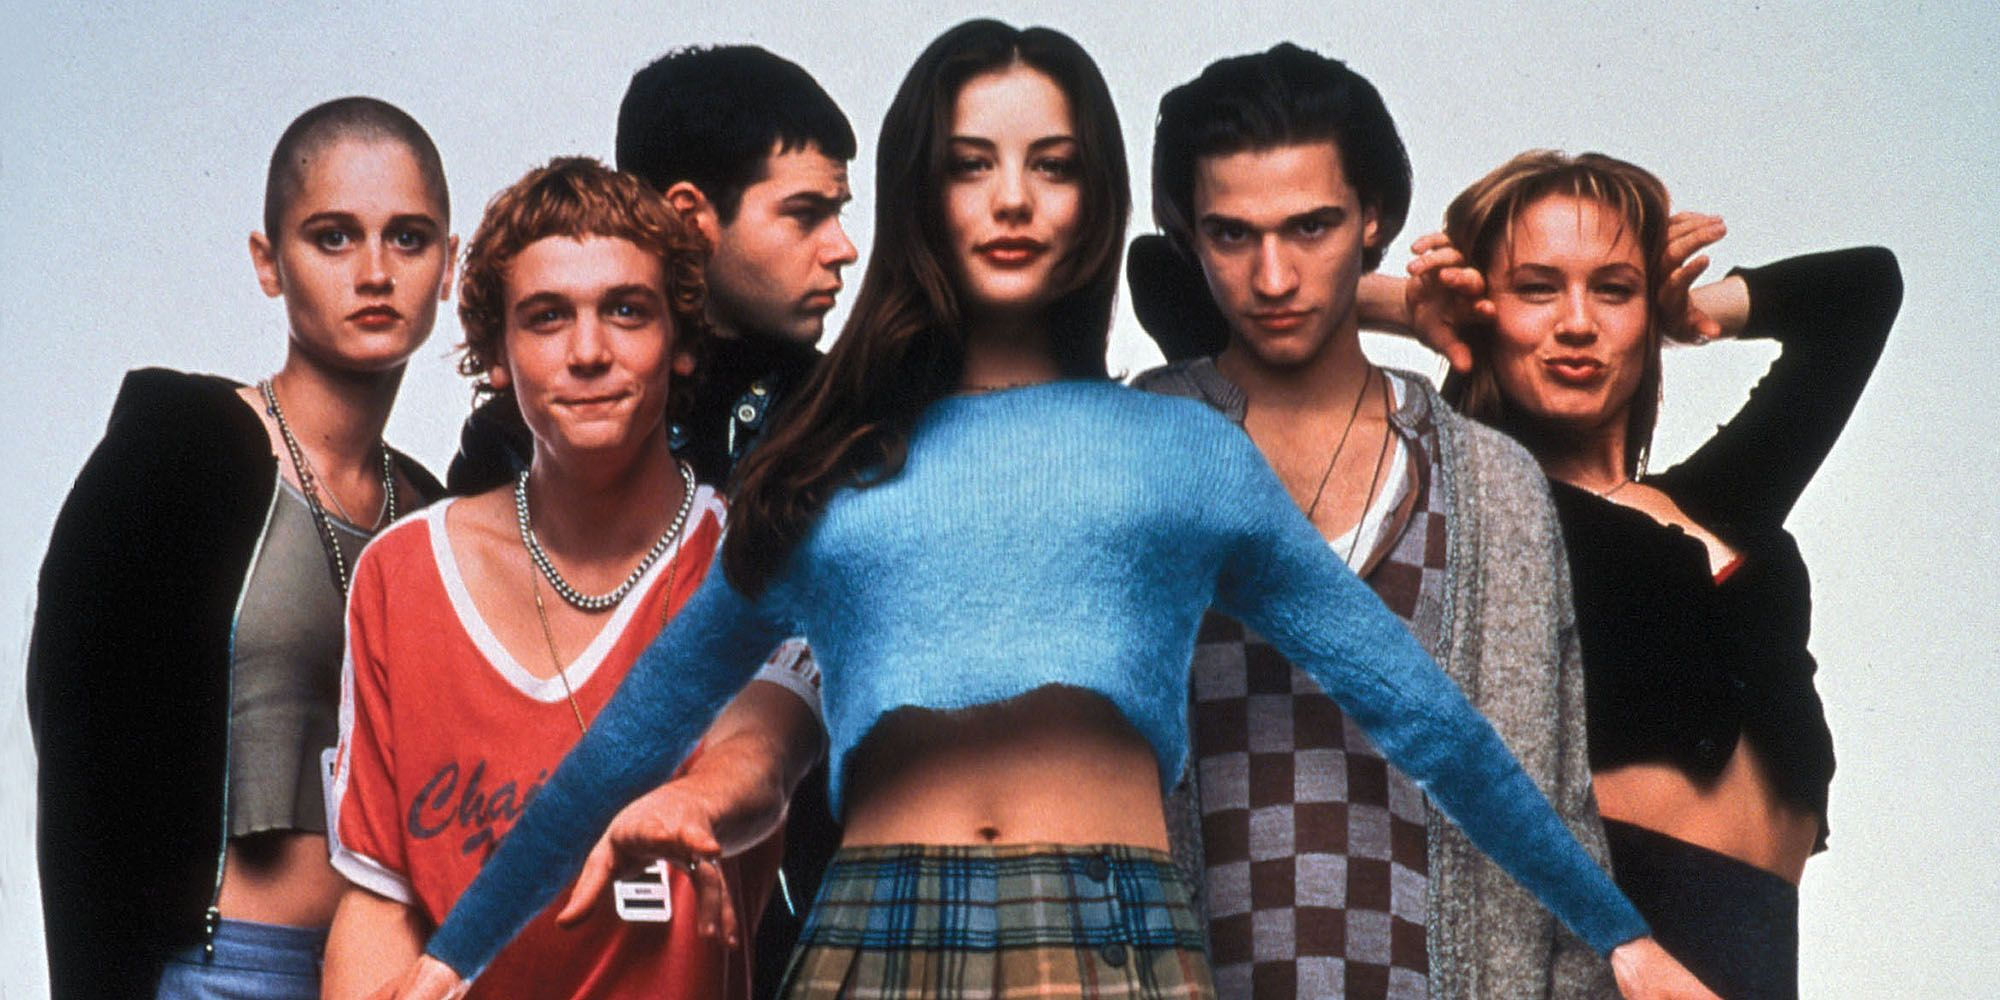 RELEASE DATE: Sep 22, 1995. MOVIE TITLE: Empire Records. STUDIO: New Regency Pictures. PLOT: A day in the life of the employees of Empire Records. Except this is a day where everything comes to a head for a number of them facing personal crises - can they pull through together? And more importantly, can they keep their record store independent and not swallowed up by corporate greed? PICTURED: DEBI MAZAR as Jane, RENEE ZELLWEGER as Gina, Movie Art.